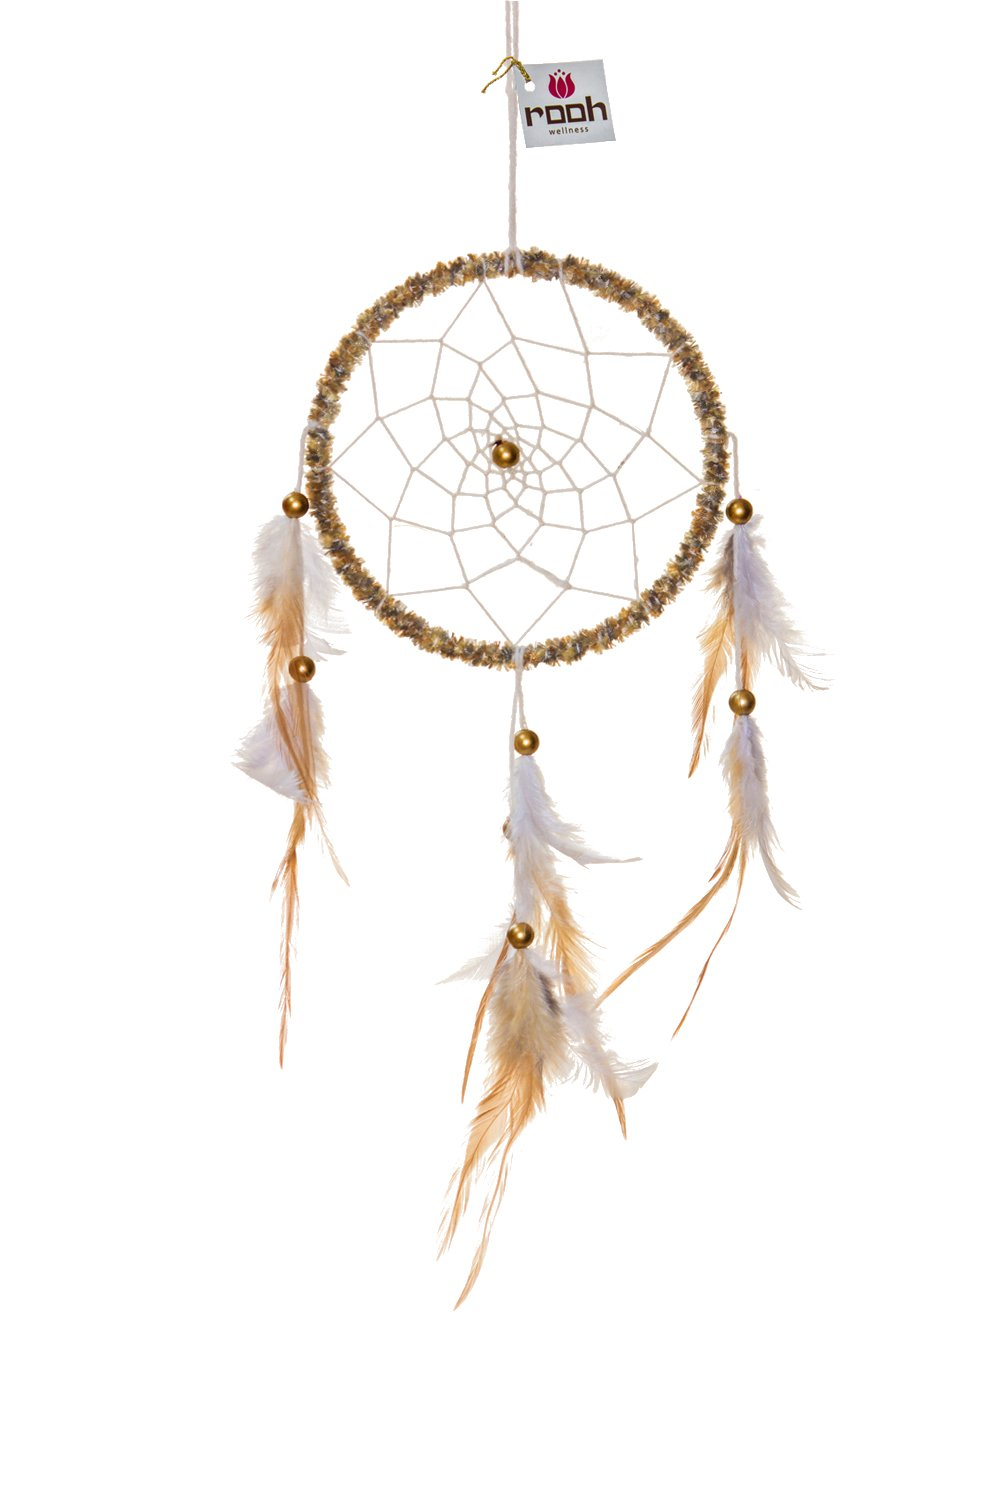 Rooh Dream Catcher ~Gold Velvet ~ Handmade Hangings for Positivity (Can be used as Home Décor Accents, Wall Hangings, Garden, Car, Outdoor, Bedroom, Key chain) (gold)